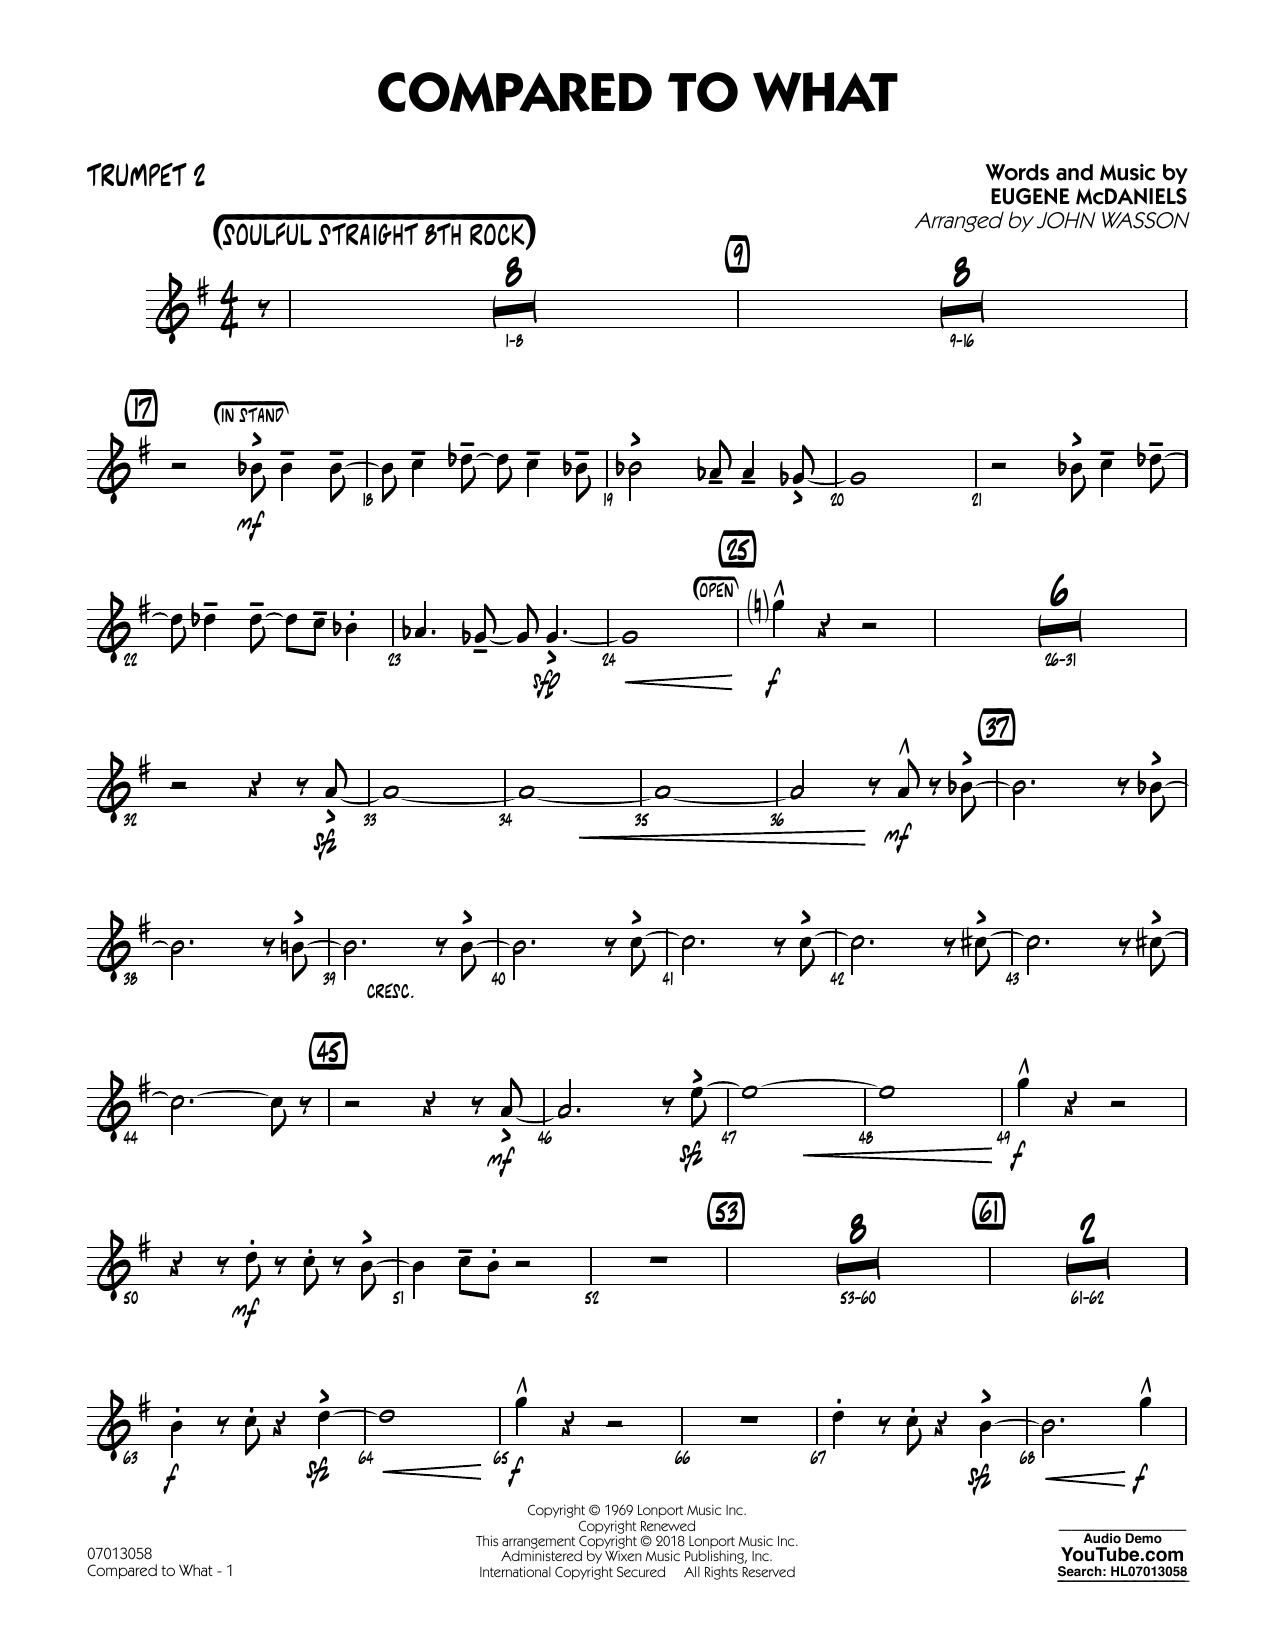 John Wasson Compared To What - Trumpet 2 sheet music notes and chords. Download Printable PDF.